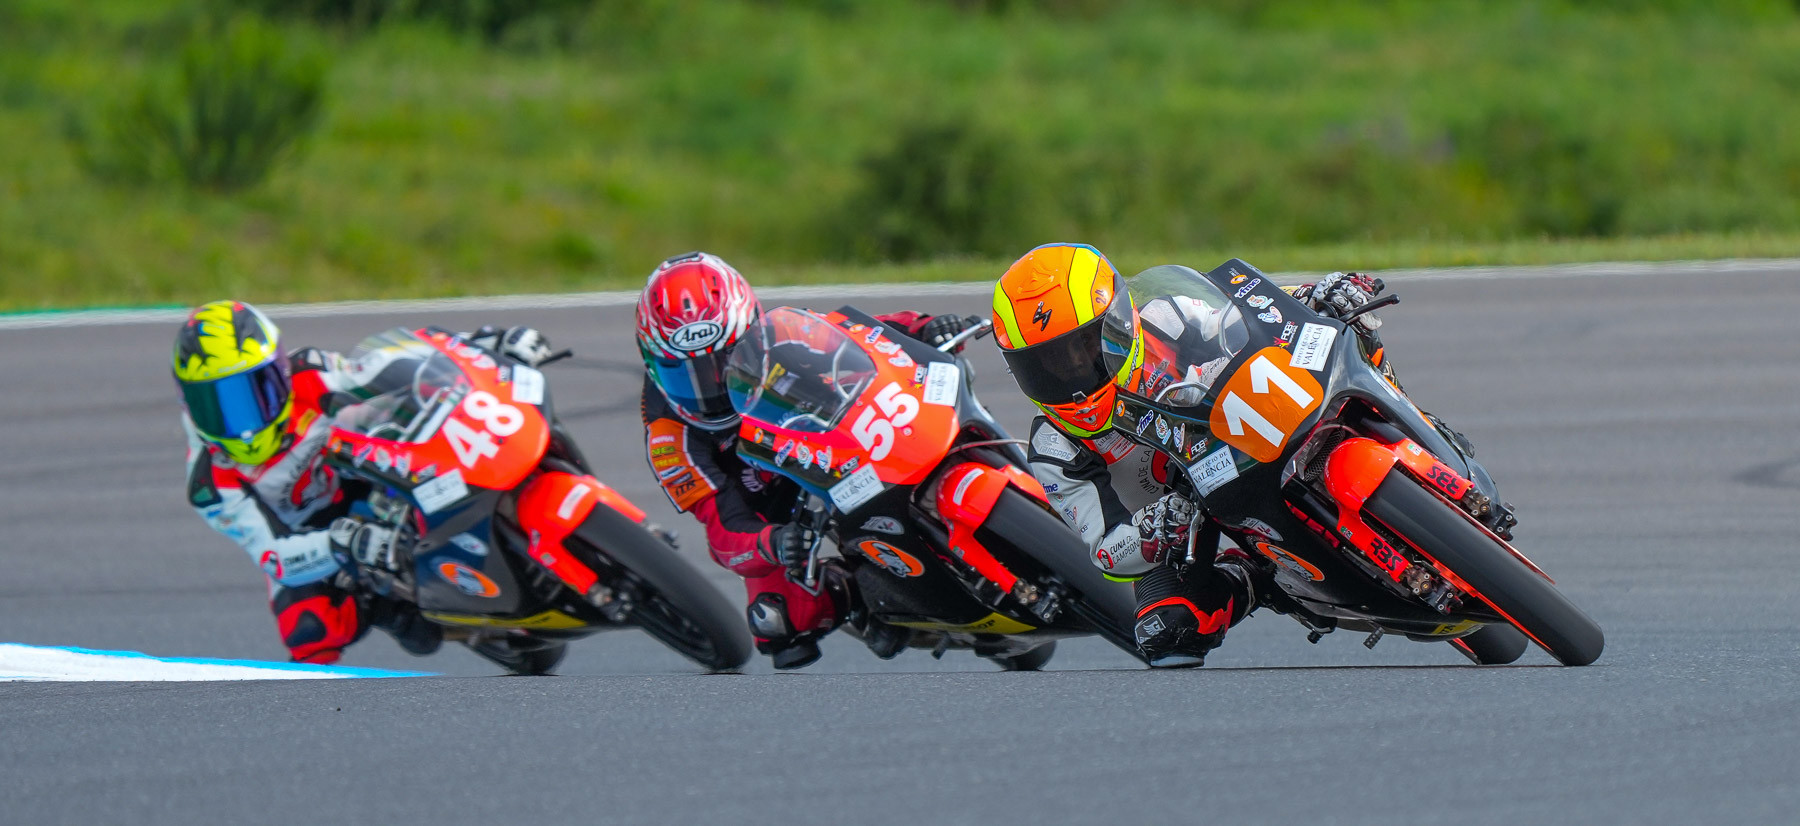 American Mikey Lou Sanchez (55) sandwiched in between Oliver Cantos Llorca (11) and Vasco Cesar Fonseca (48) during Cuna de Campeones Moto 5 Race Two at Portugal. Llorca won the race, and Sanchez crashed out while battling for the lead. Photo courtesy Sanchez Racing.